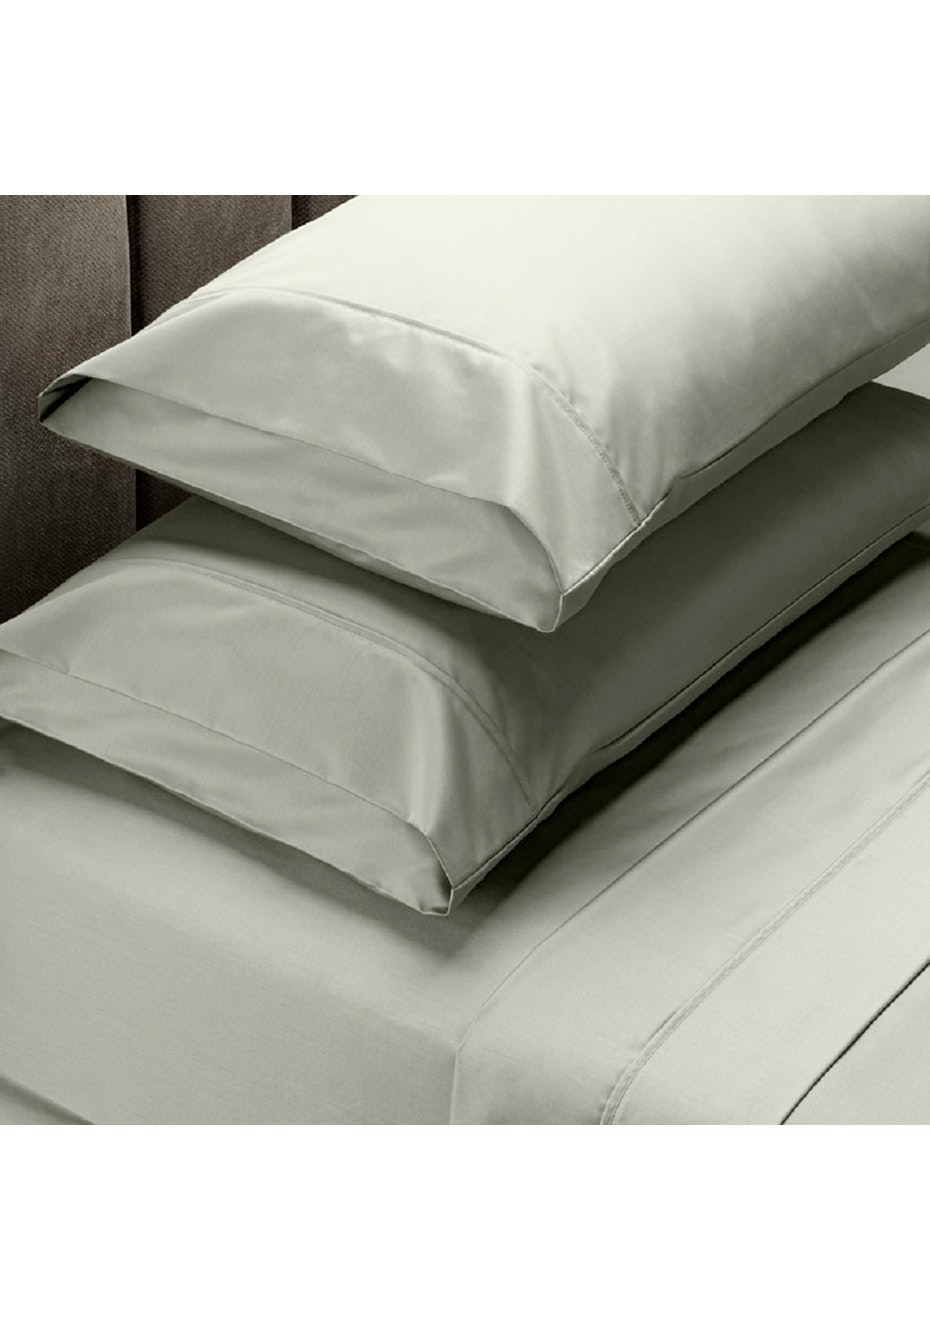 Park Avenue 1000 Thread count 100% Egyptian Cotton Sheet sets King - Oyster